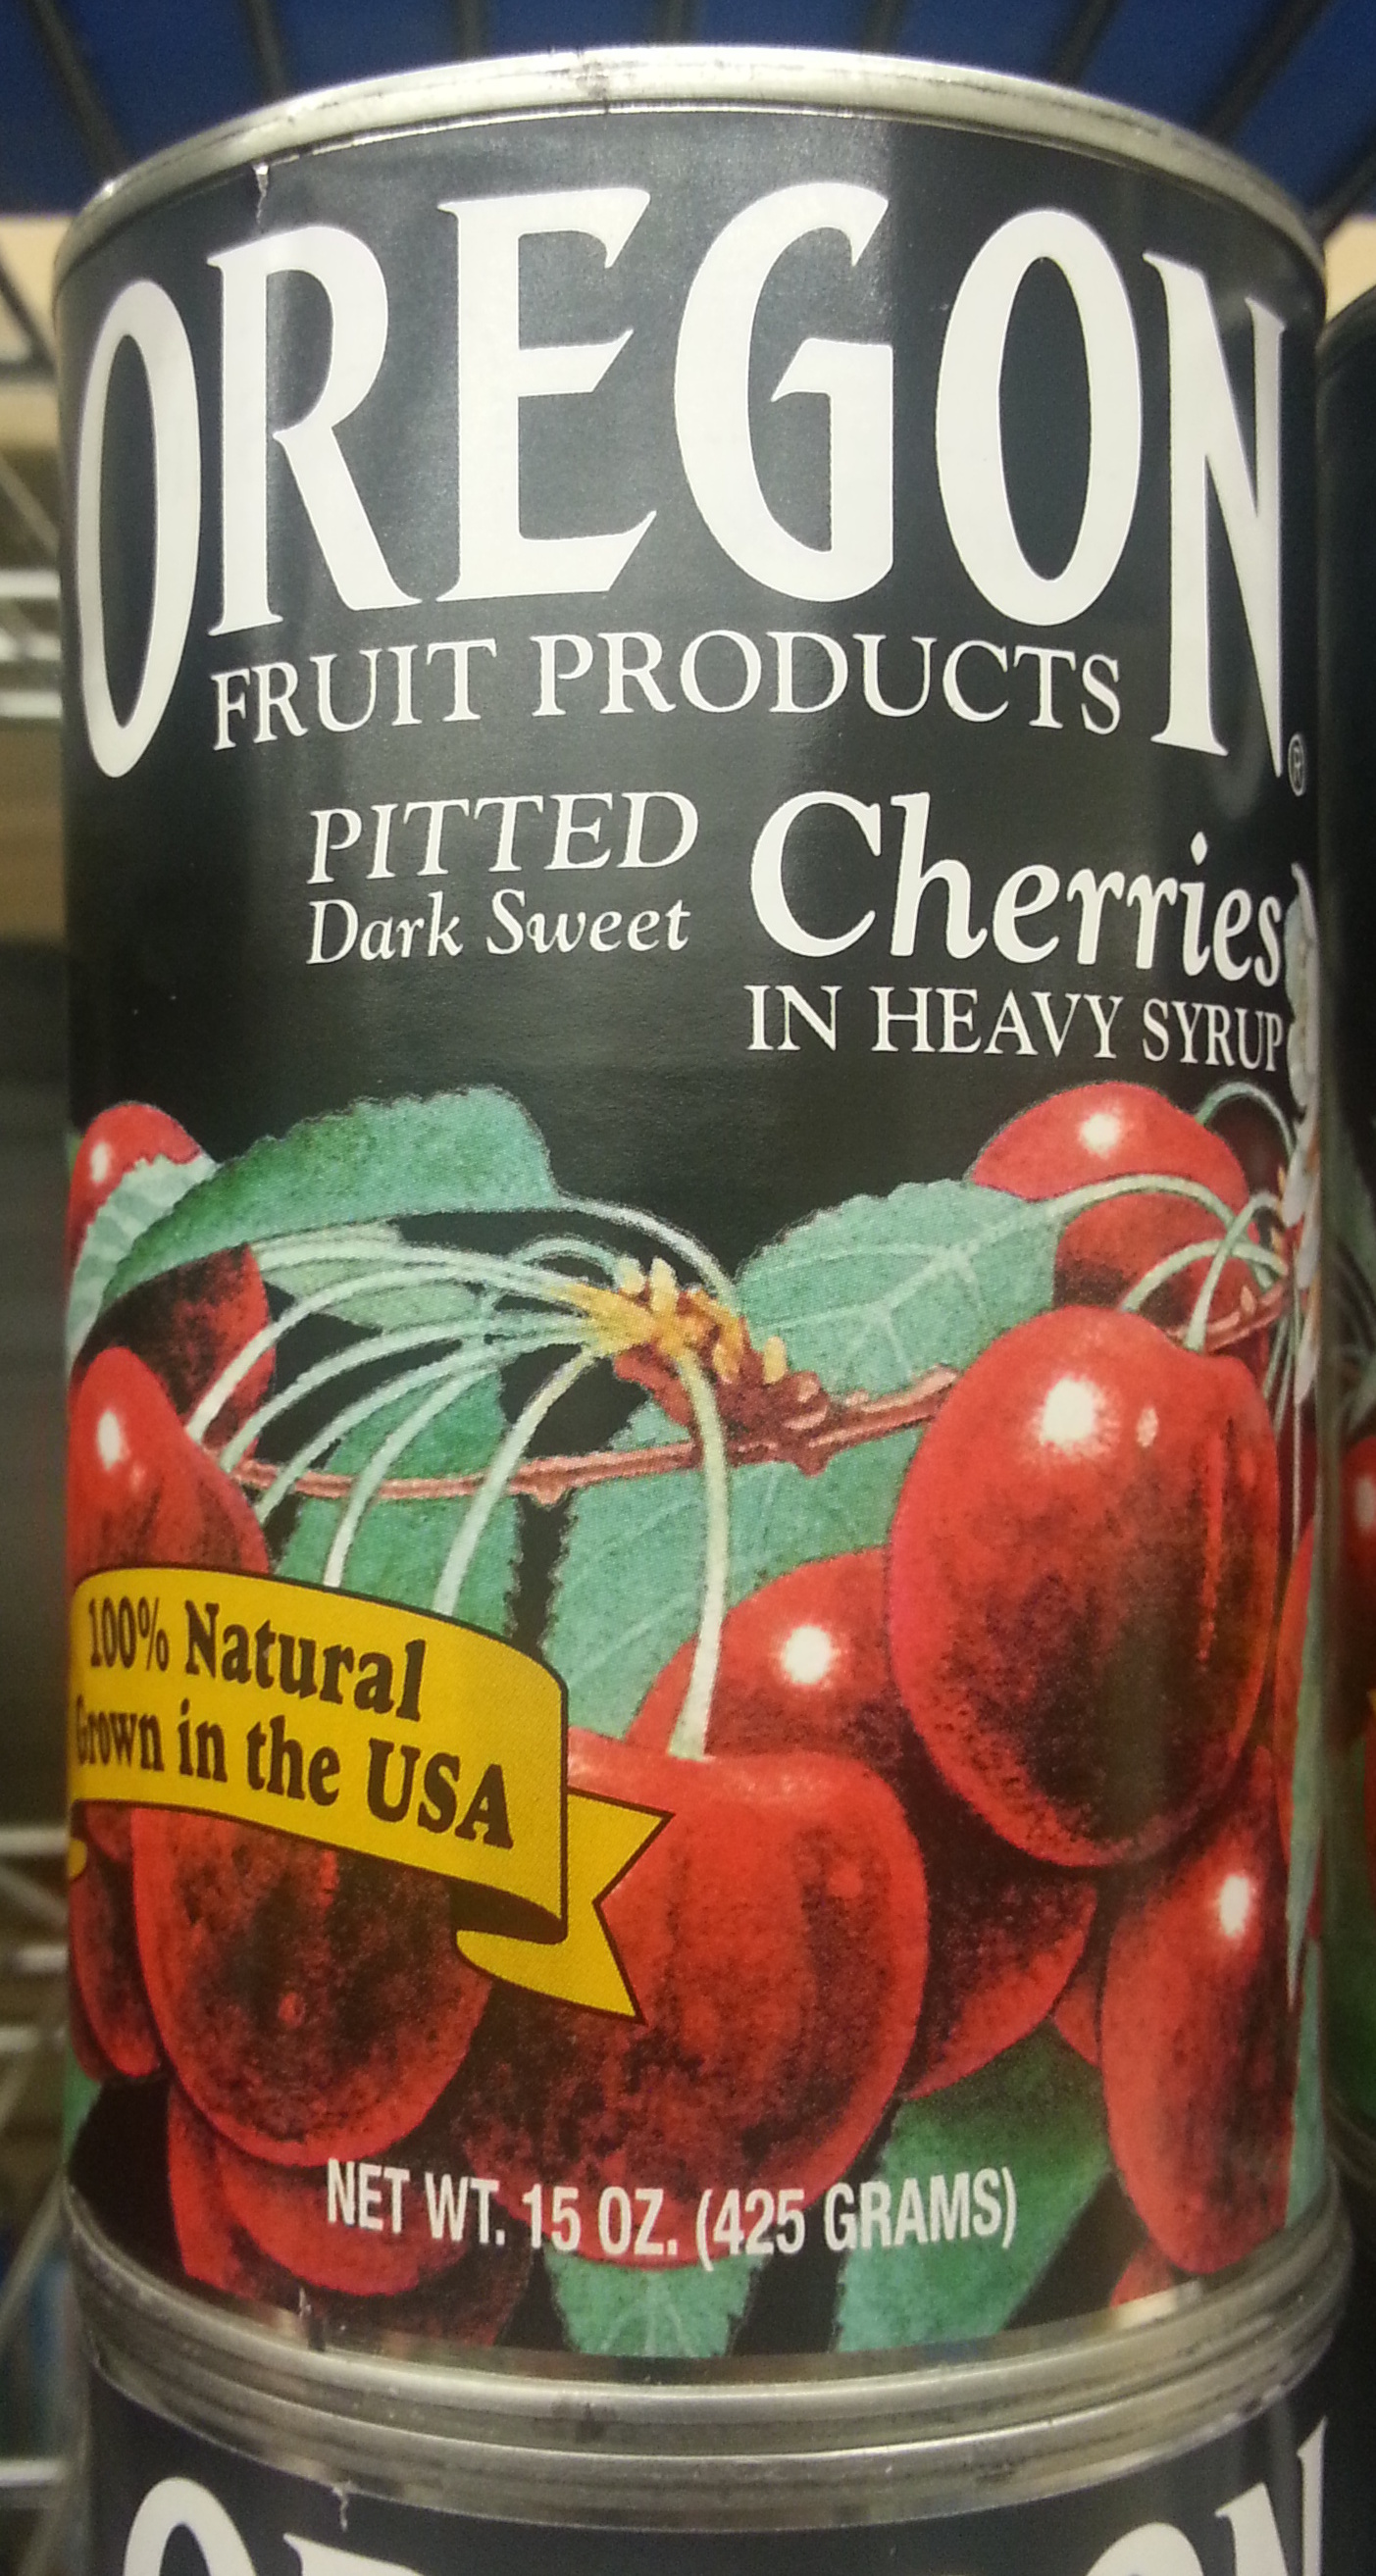 Whole pitted cherries in heavy syrup - Produit - en